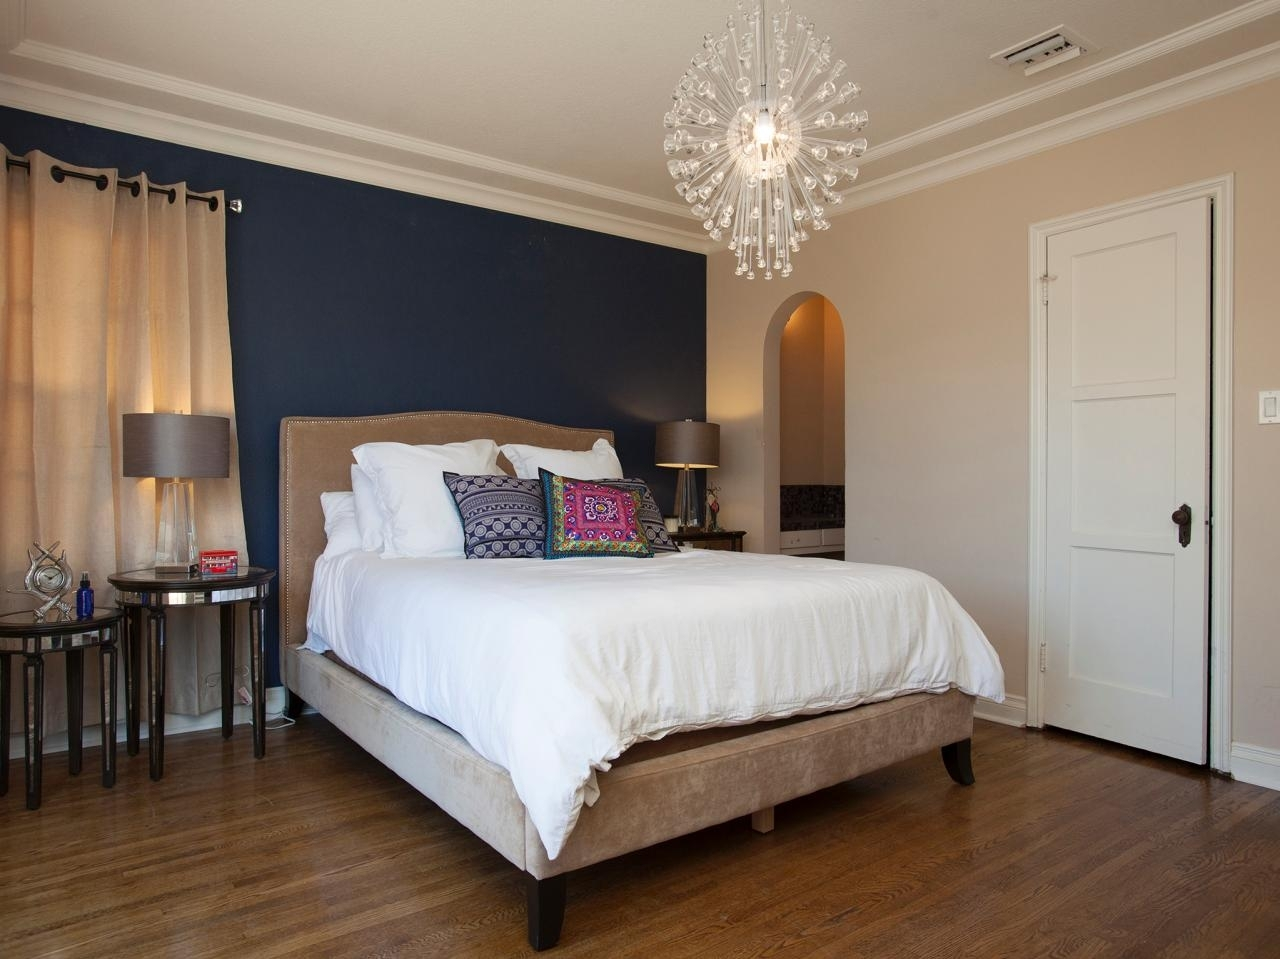 Bedroom | Dark Blue Wall Accent With Burlywood Color Base Intended For Best And Newest Blue Wall Accents (View 10 of 15)